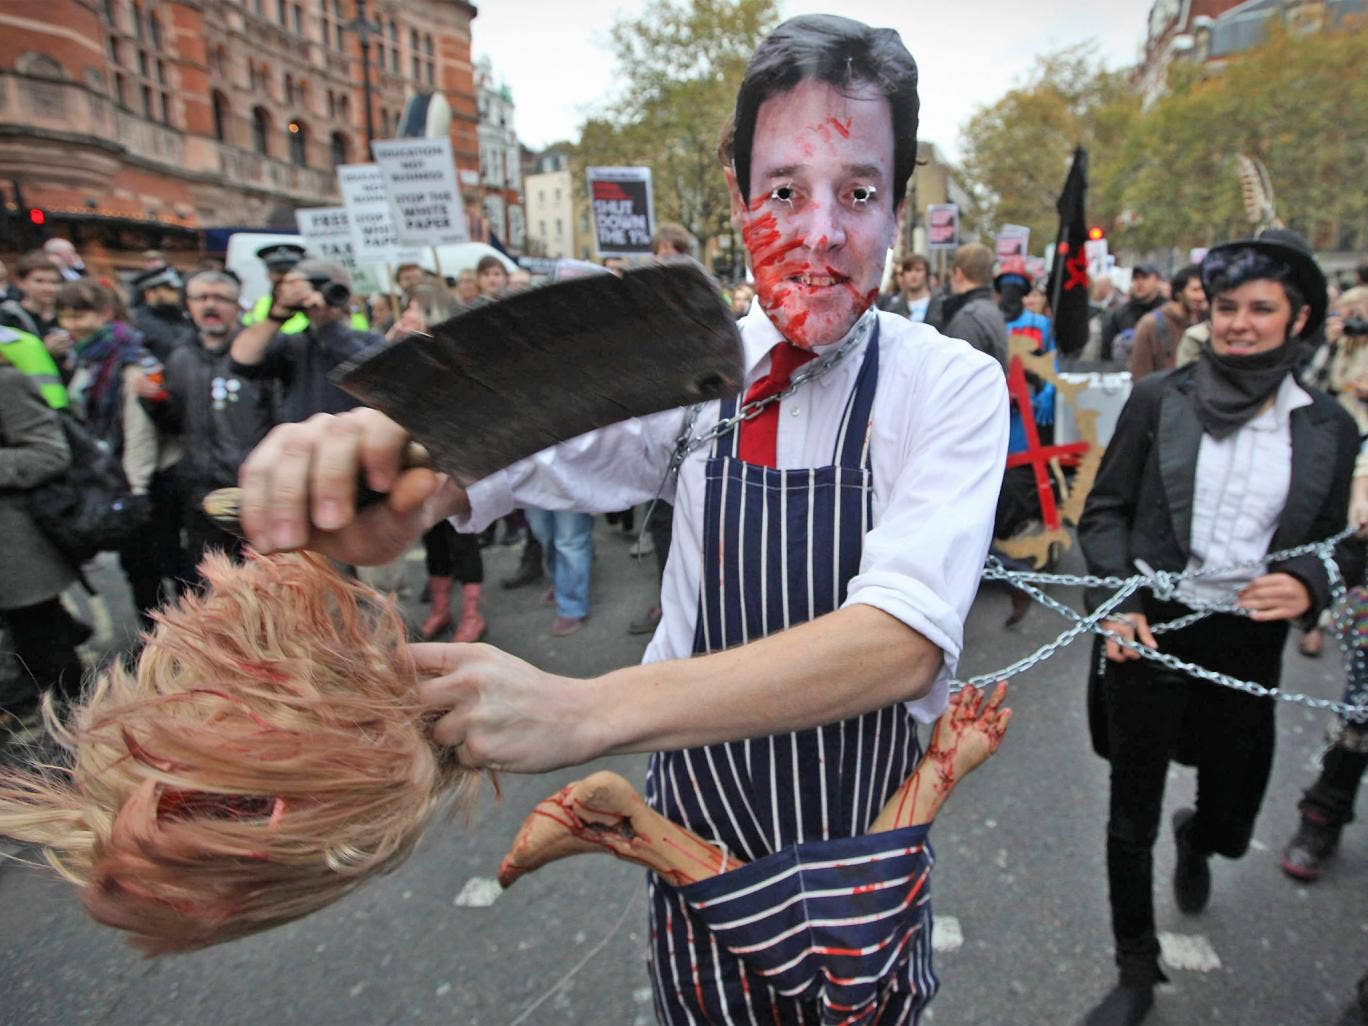 A student in a Nick Clegg mask protests against higher tuition fees in London in 2011